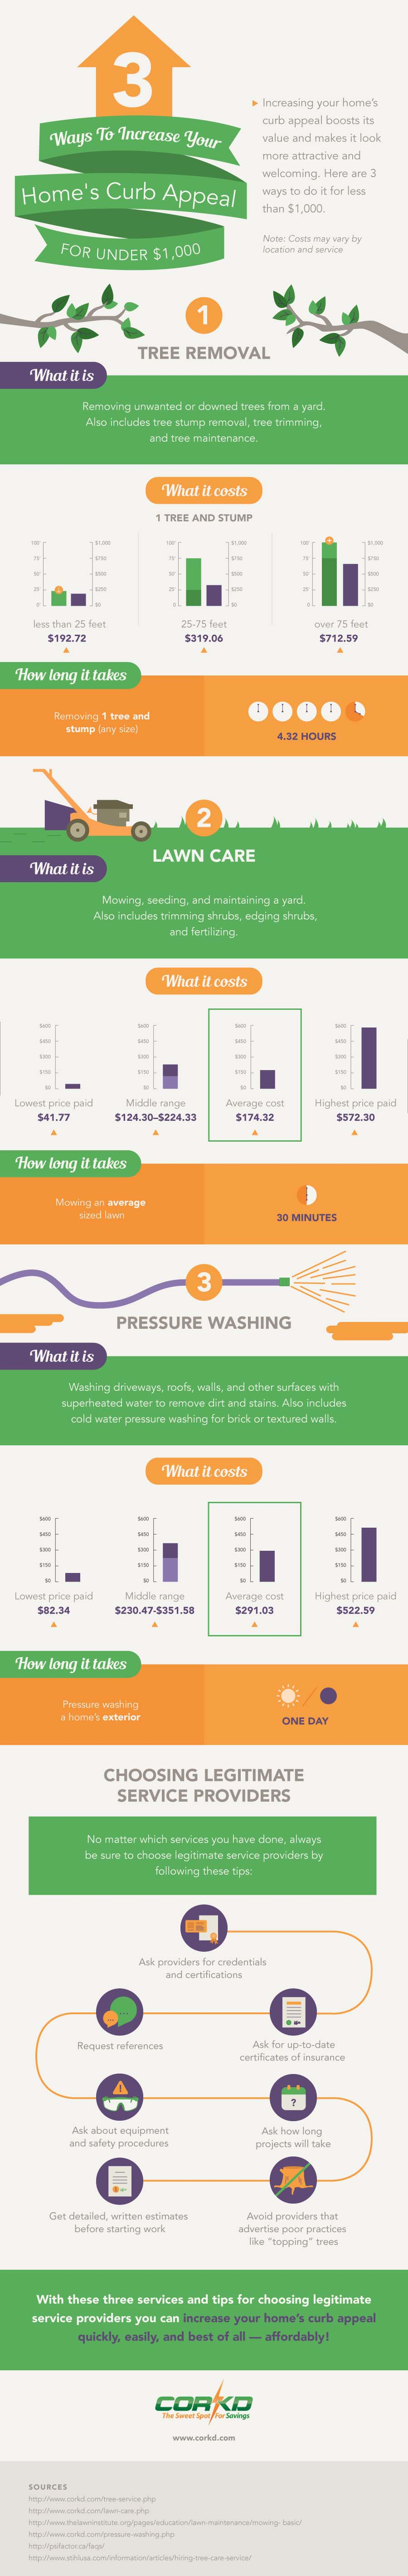 improve-curb-appeal-infograpic